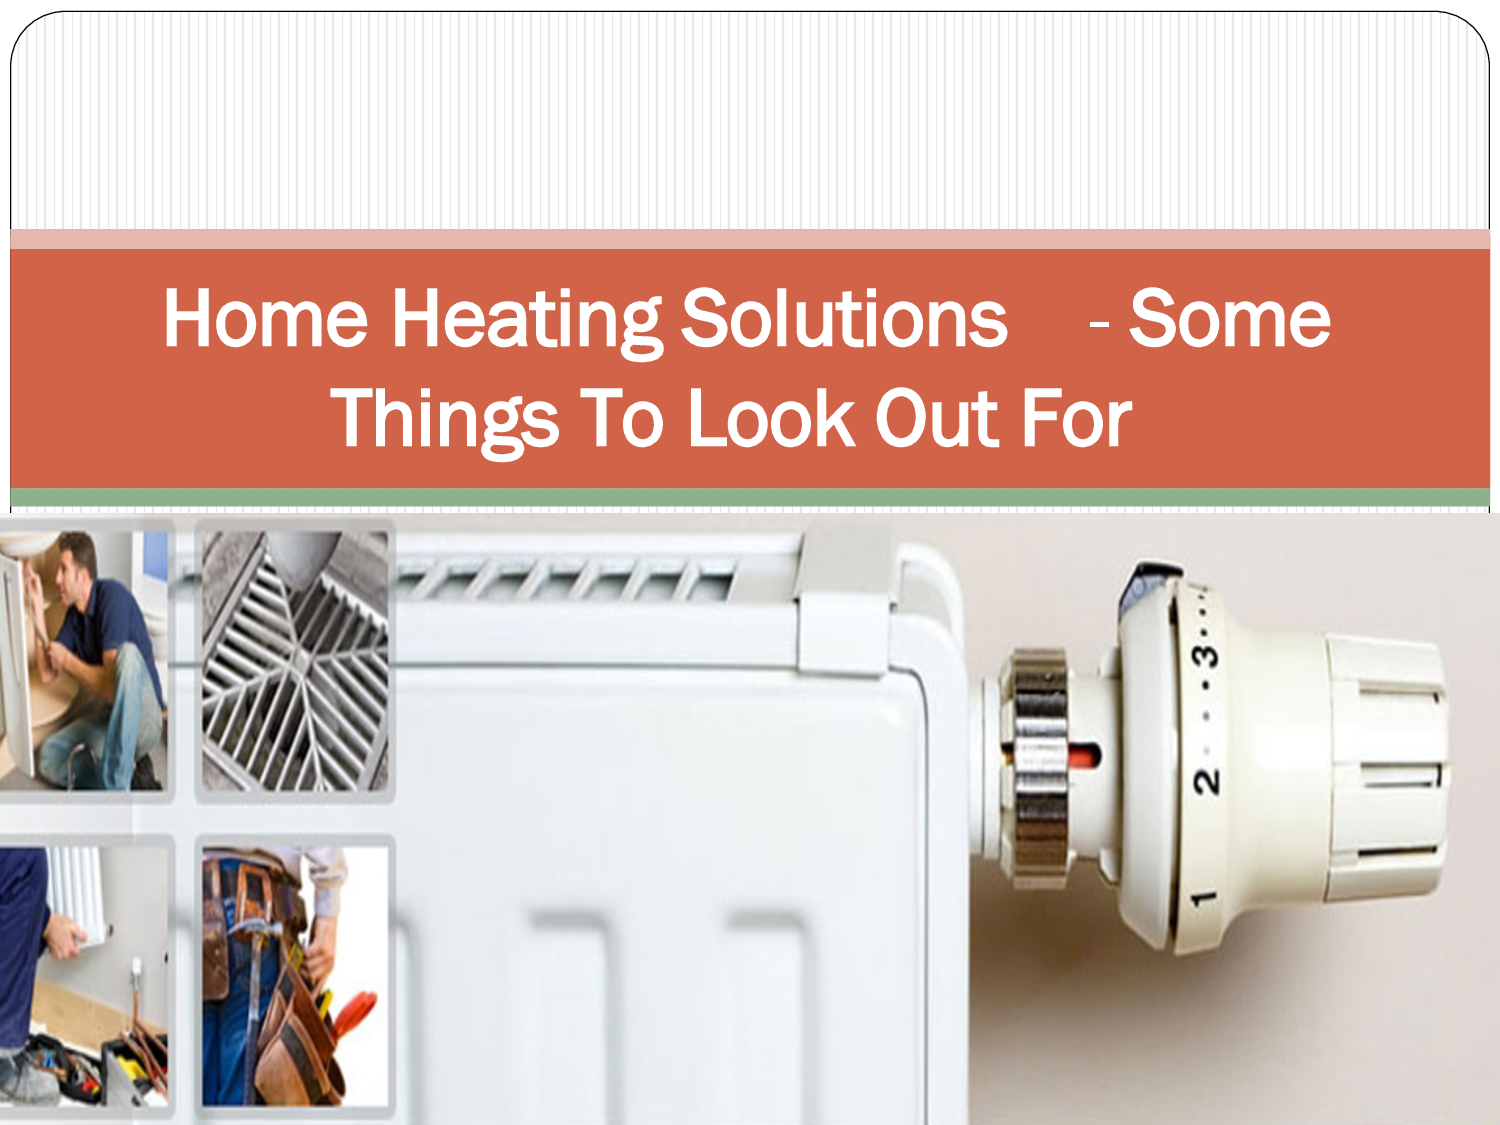 Home Heating Solutions Some Things To Look Out For Pptx Central Heating Hvac Maintenance Geothermal Heat Pumps